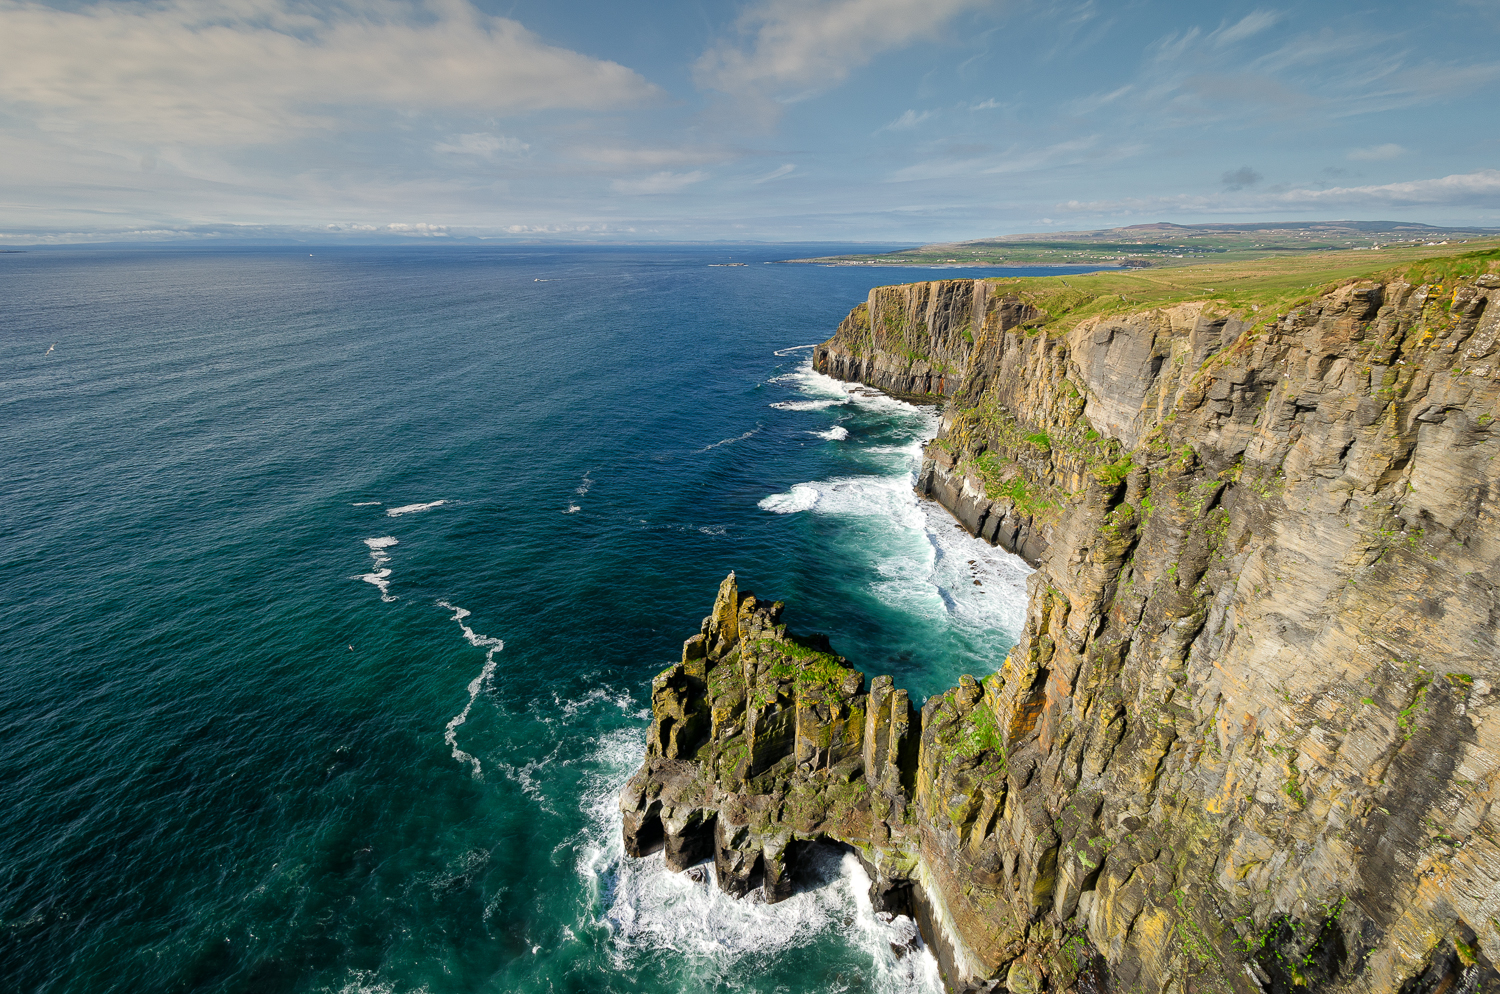 Sea cliffs on the Wild Atlantic Way between Doolin and the Cliffs of Moher